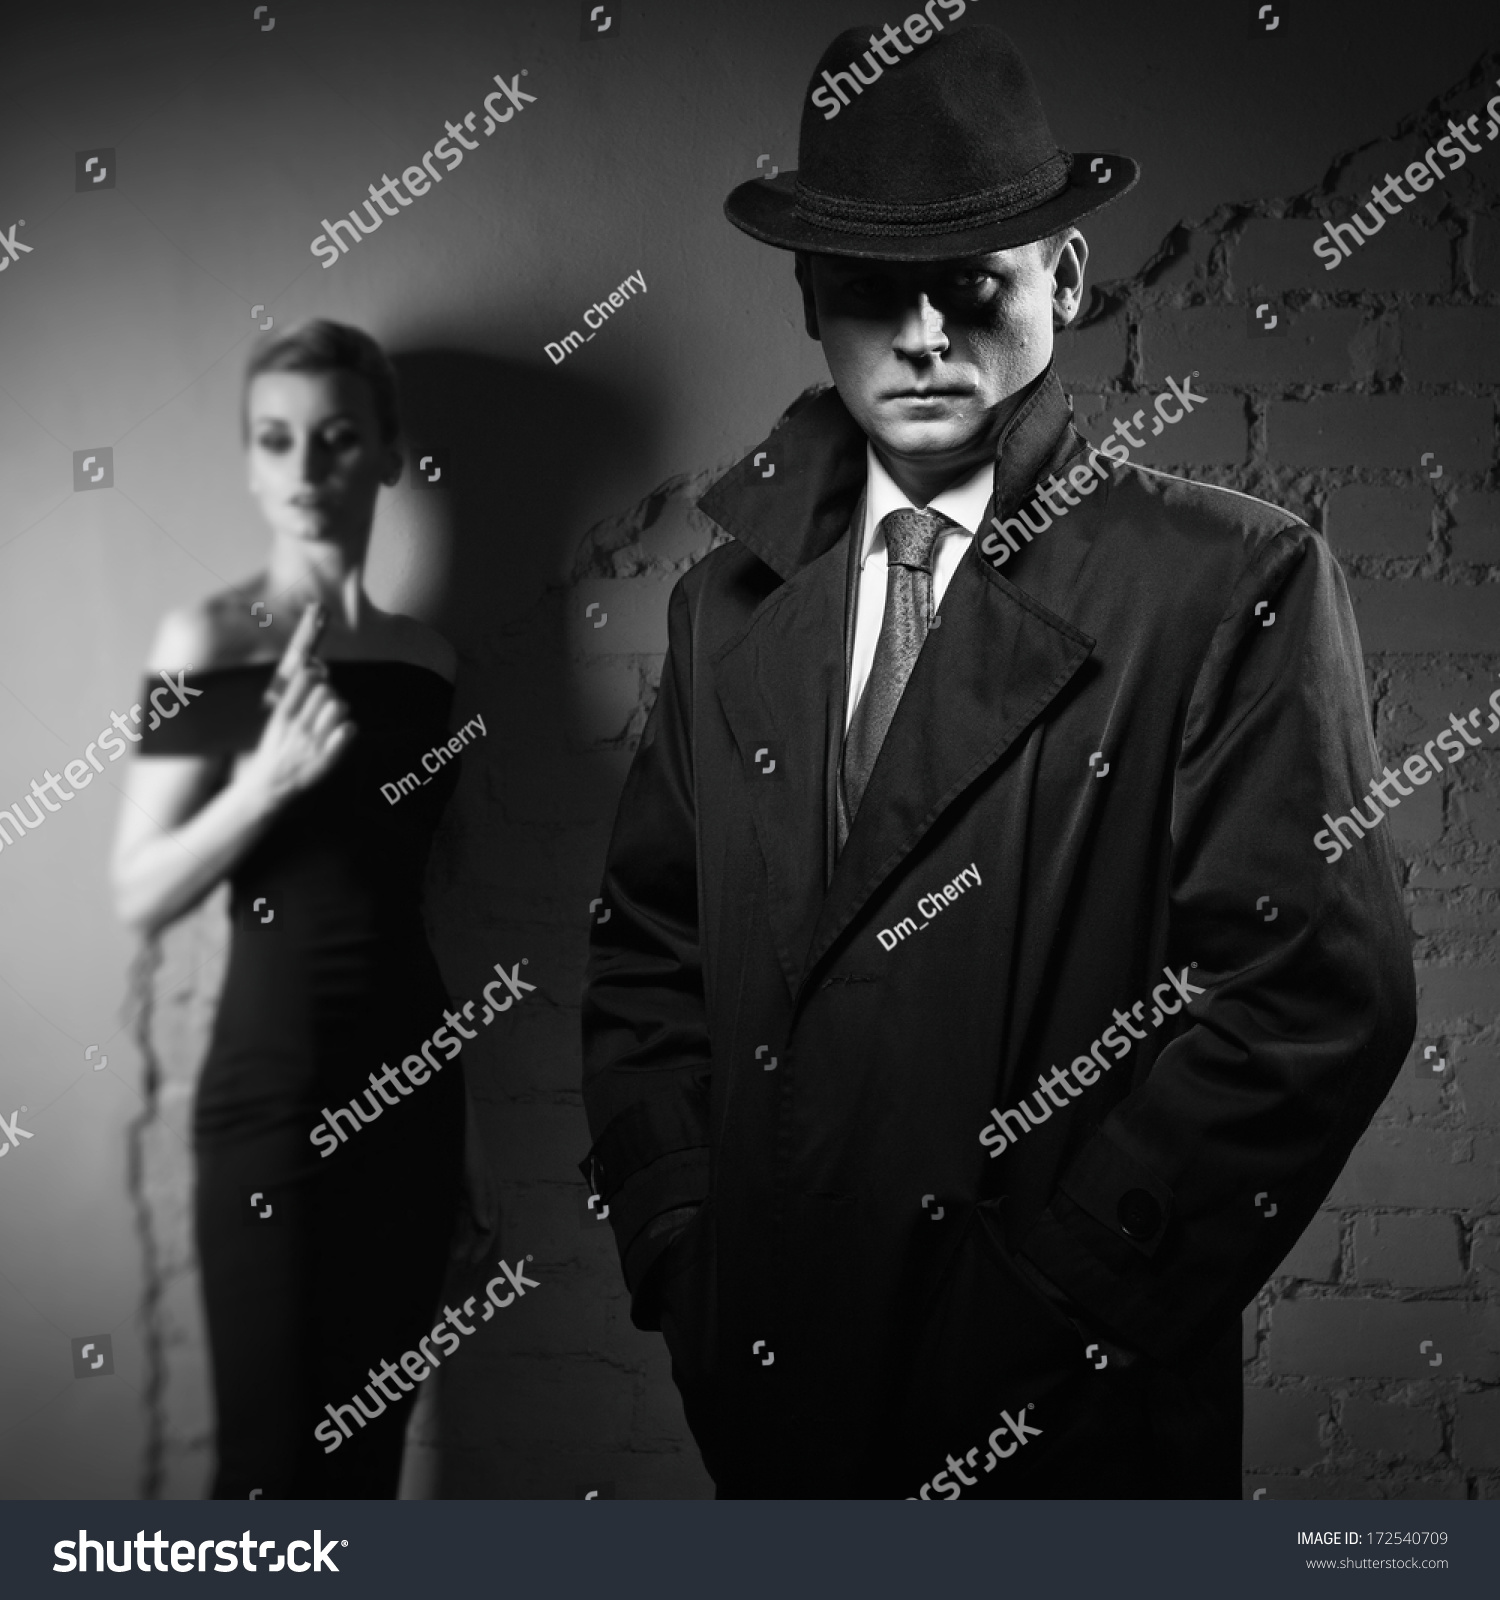 Related Keywords & Suggestions for noir detectives